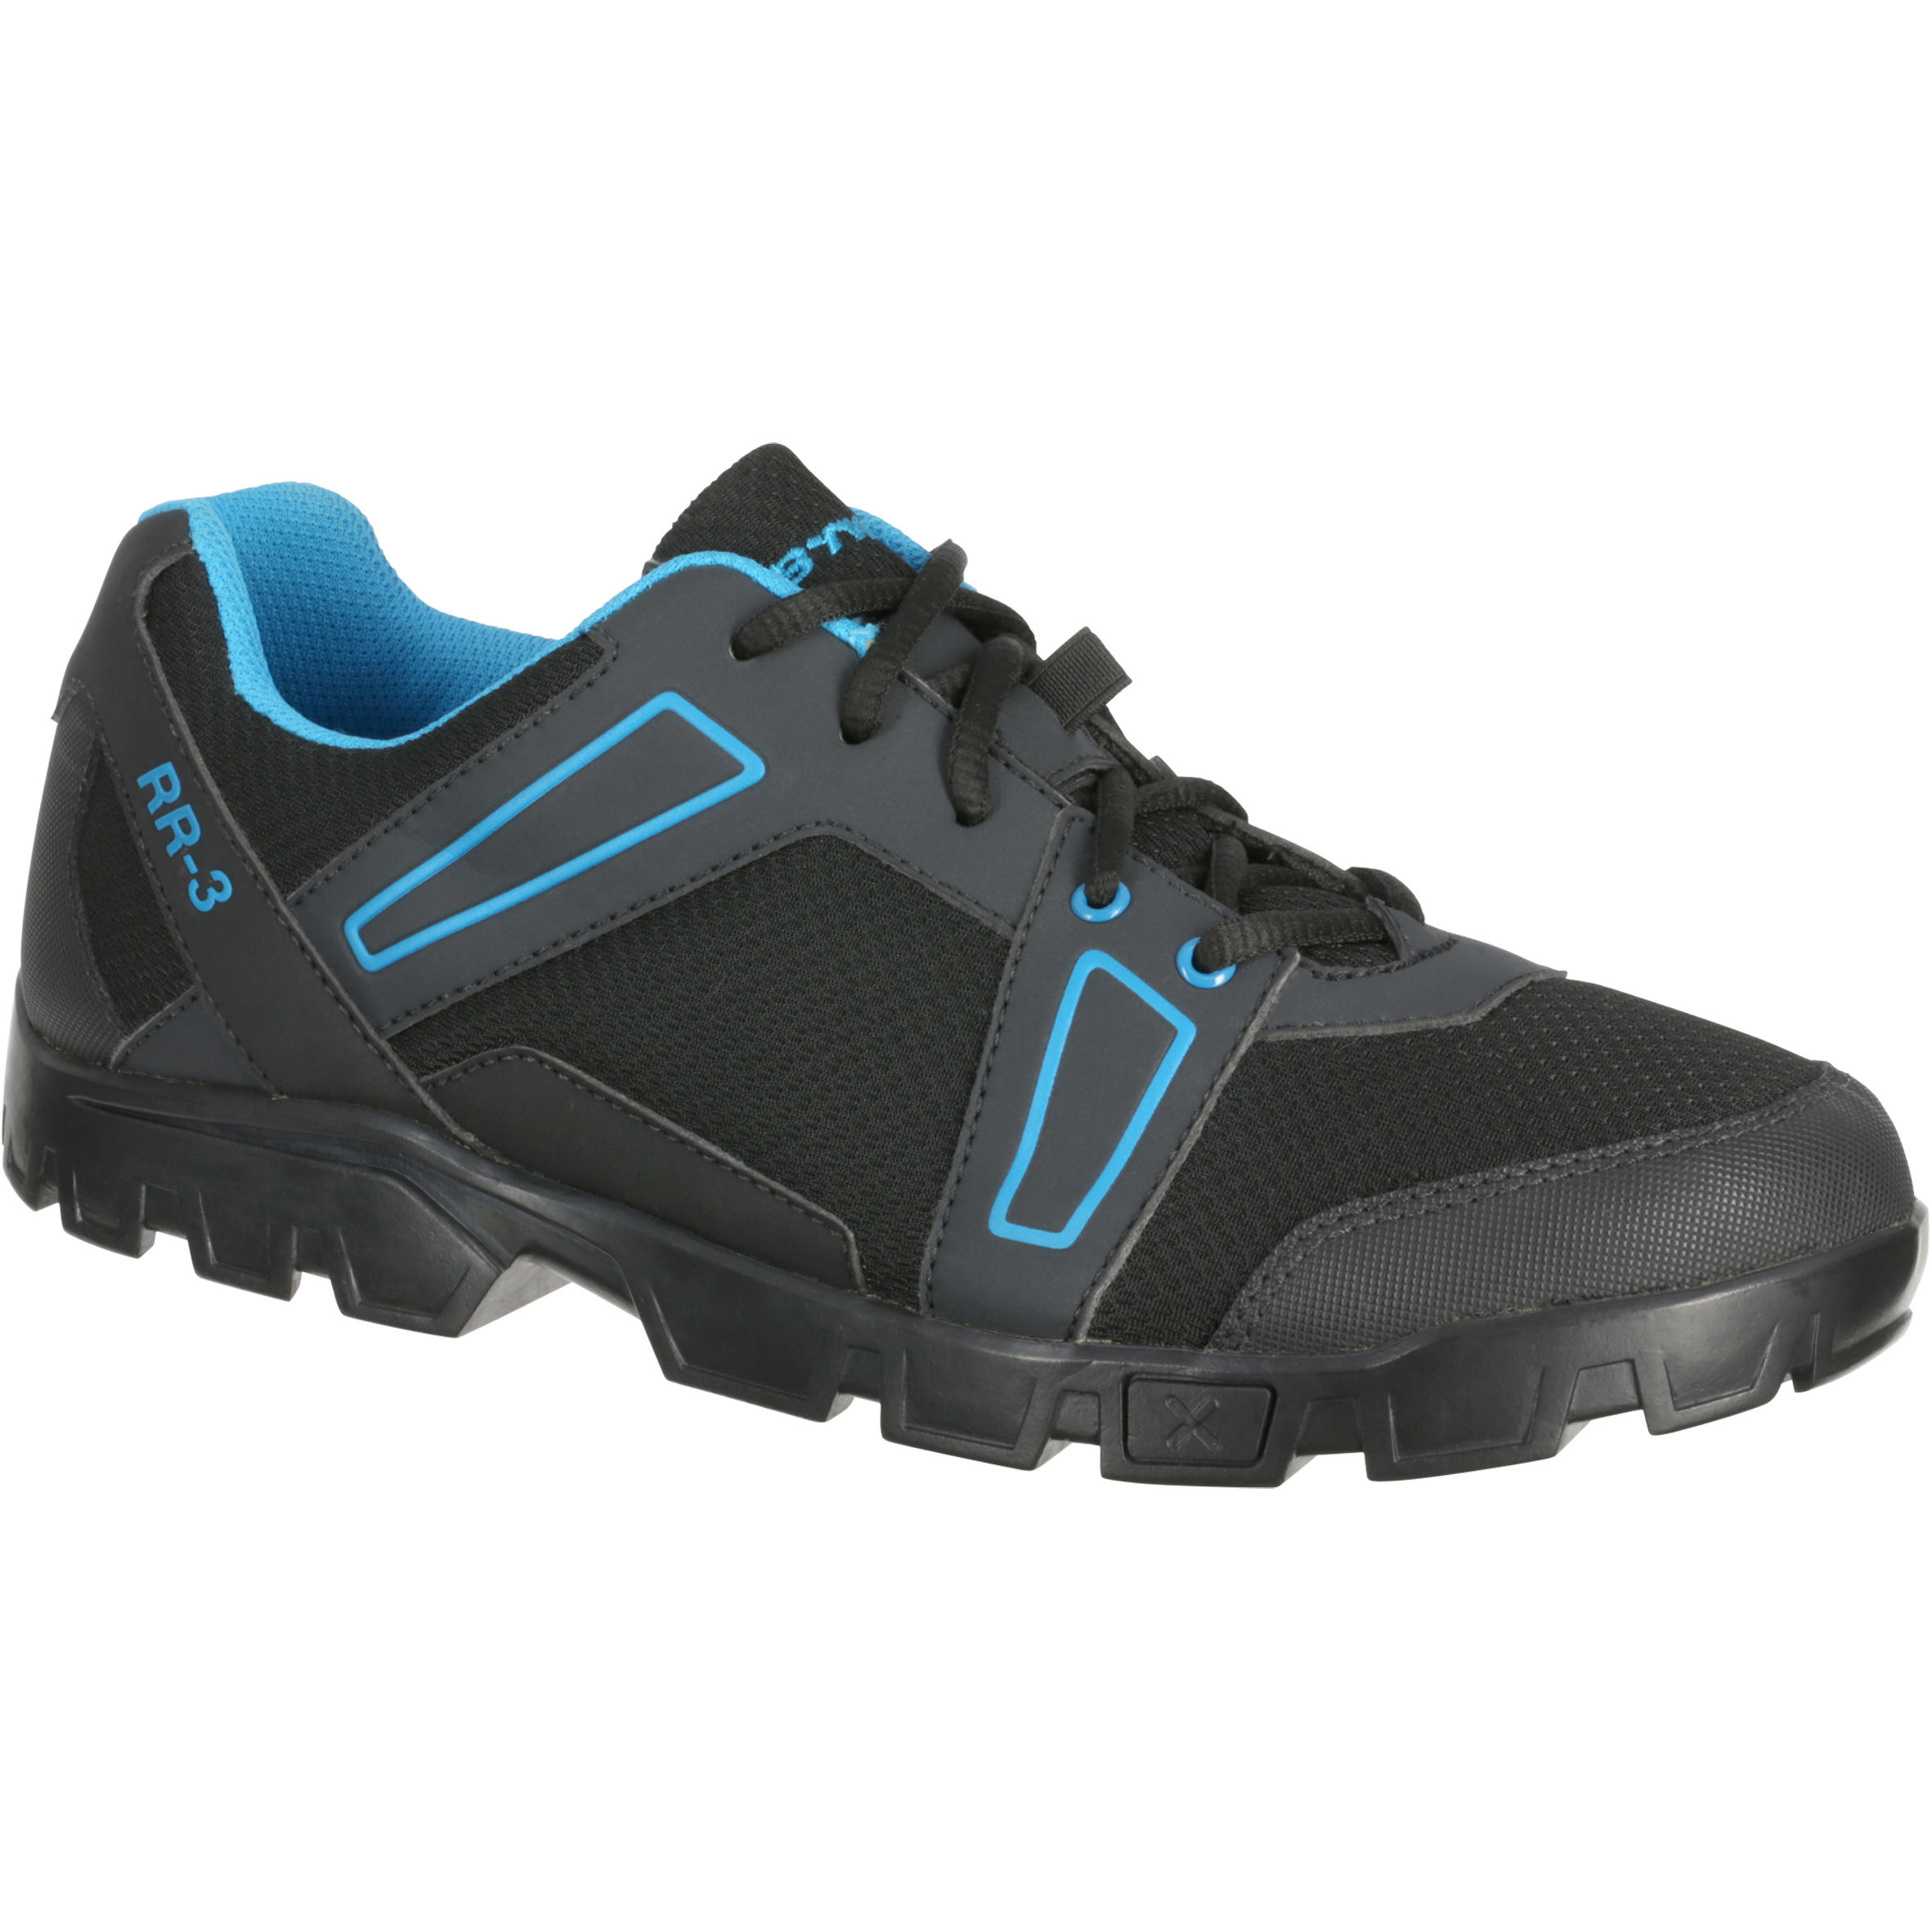 300 Mountain Bike Touring Shoes - Black/Blue